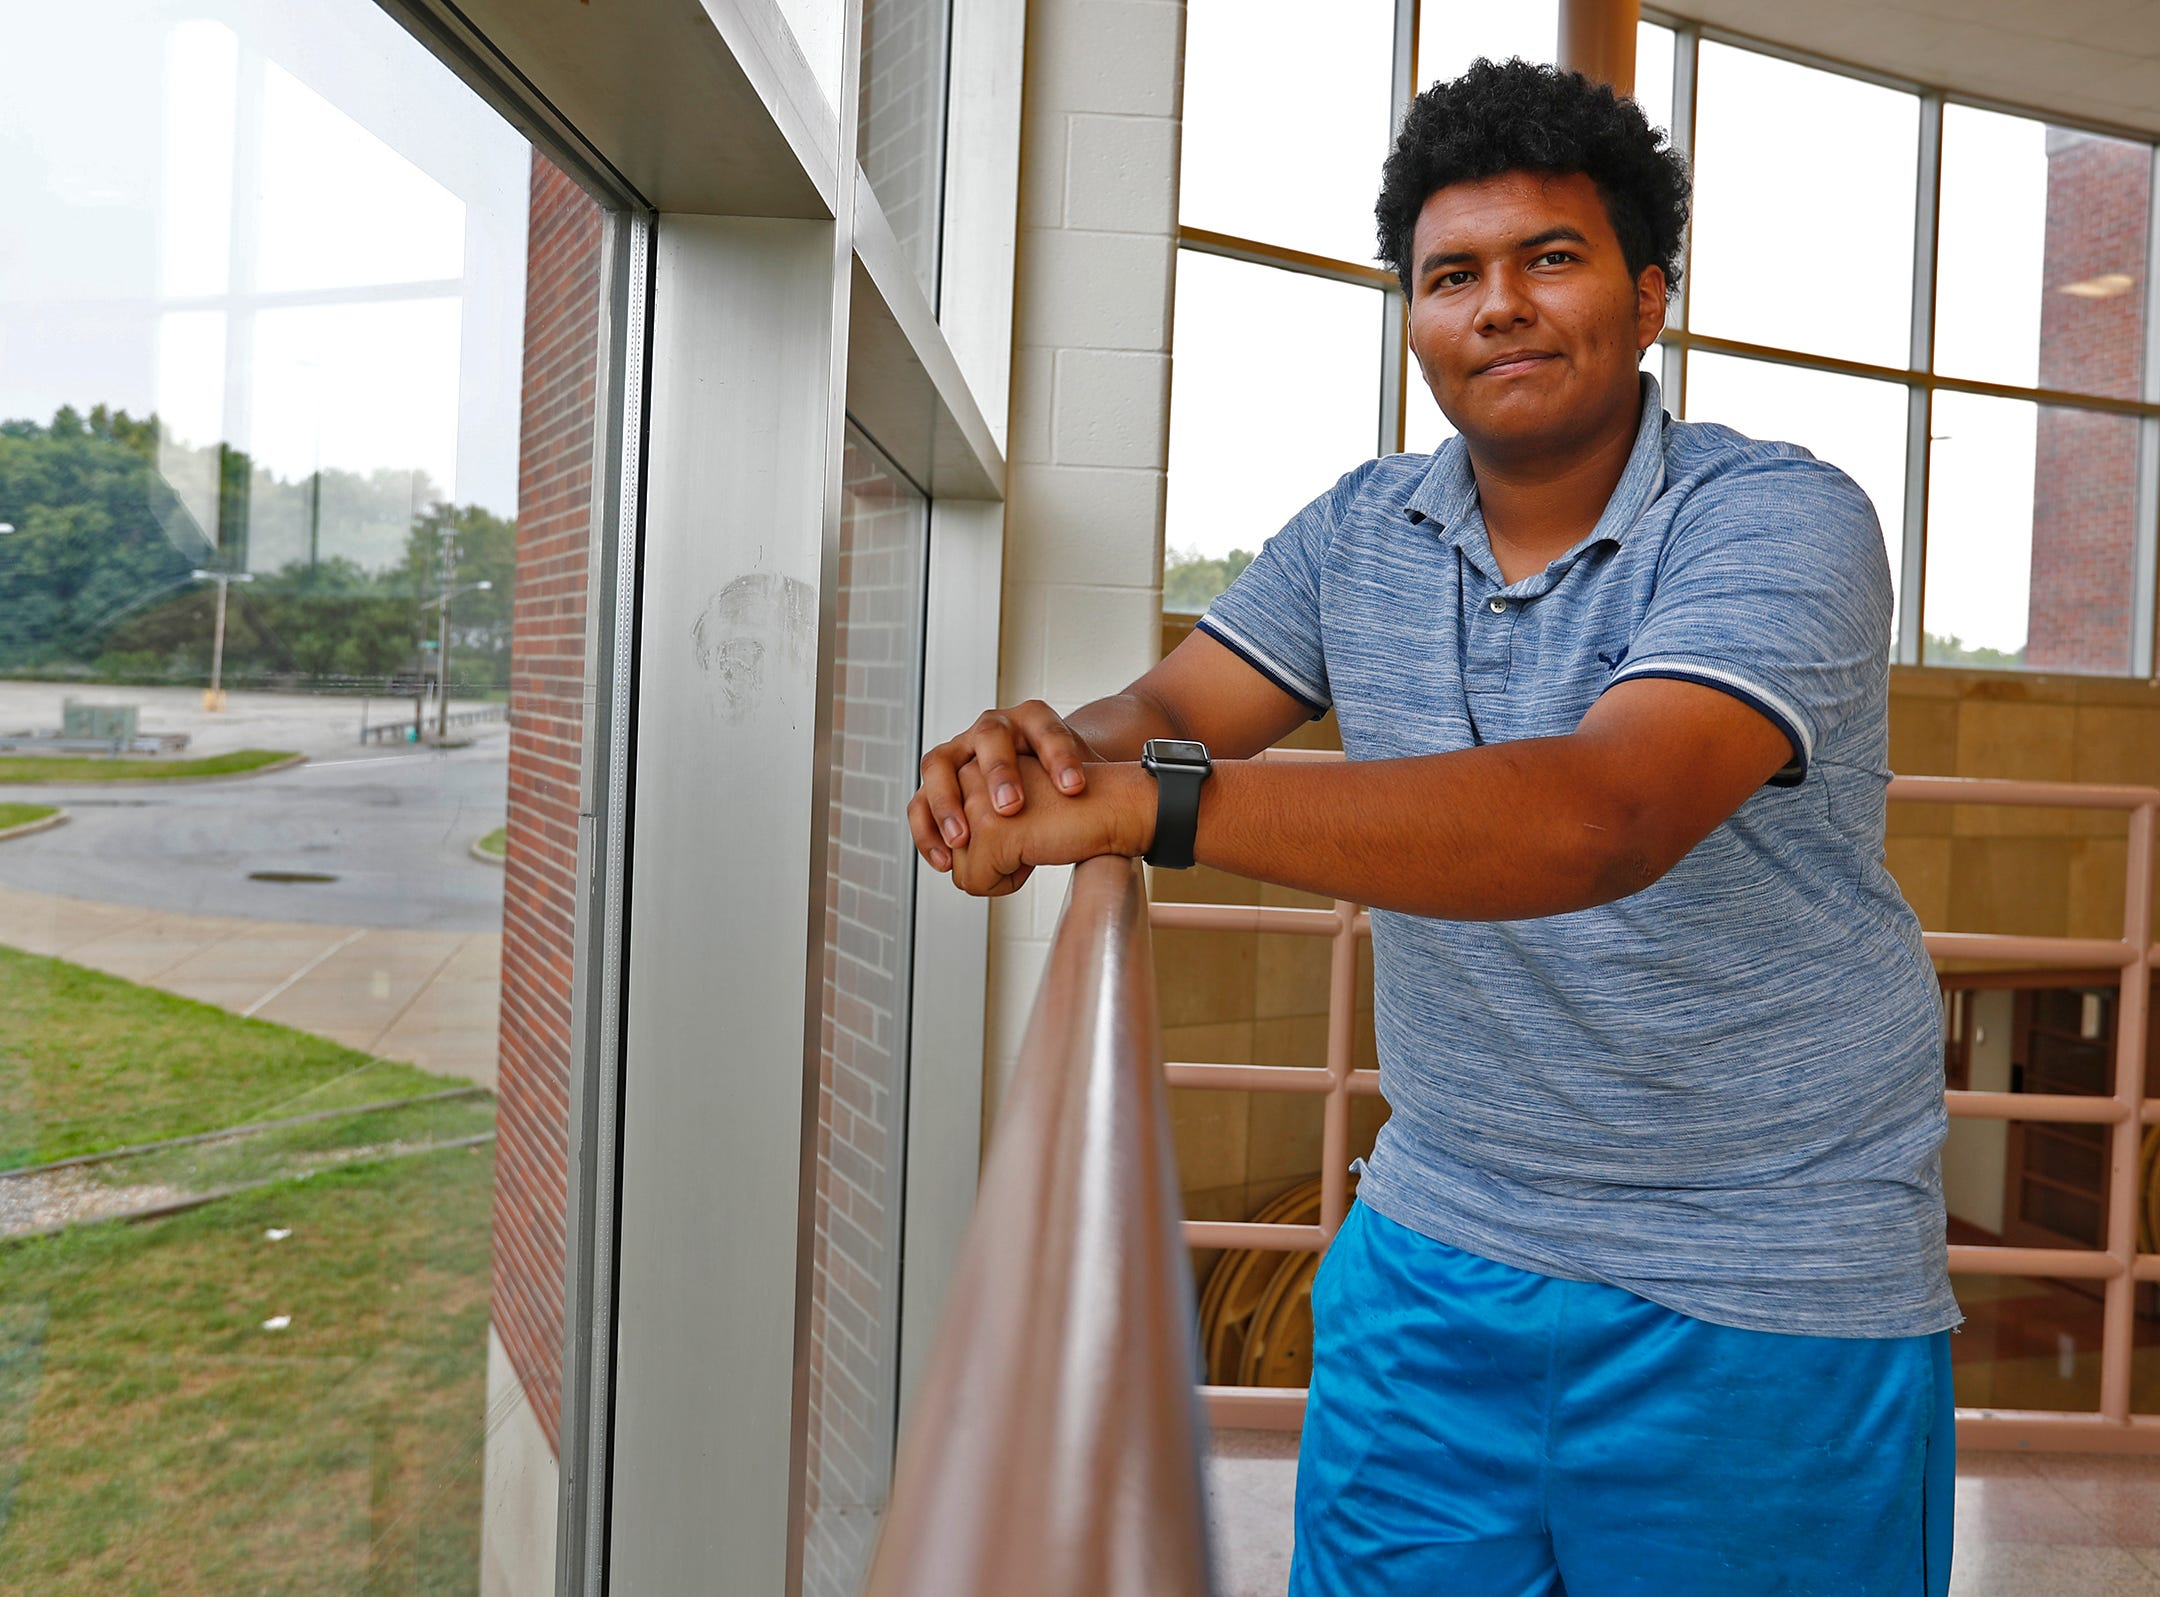 Lester, at Emmerich Manual High School, Monday, July 31, 2018.  He moved to Indianapolis when he was 15 years old and is set to graduate from Manual in 2019.  Lester, an undocumented immigrant from Honduras, dreams of going to college.  He hopes that football will help him pay for that dream.